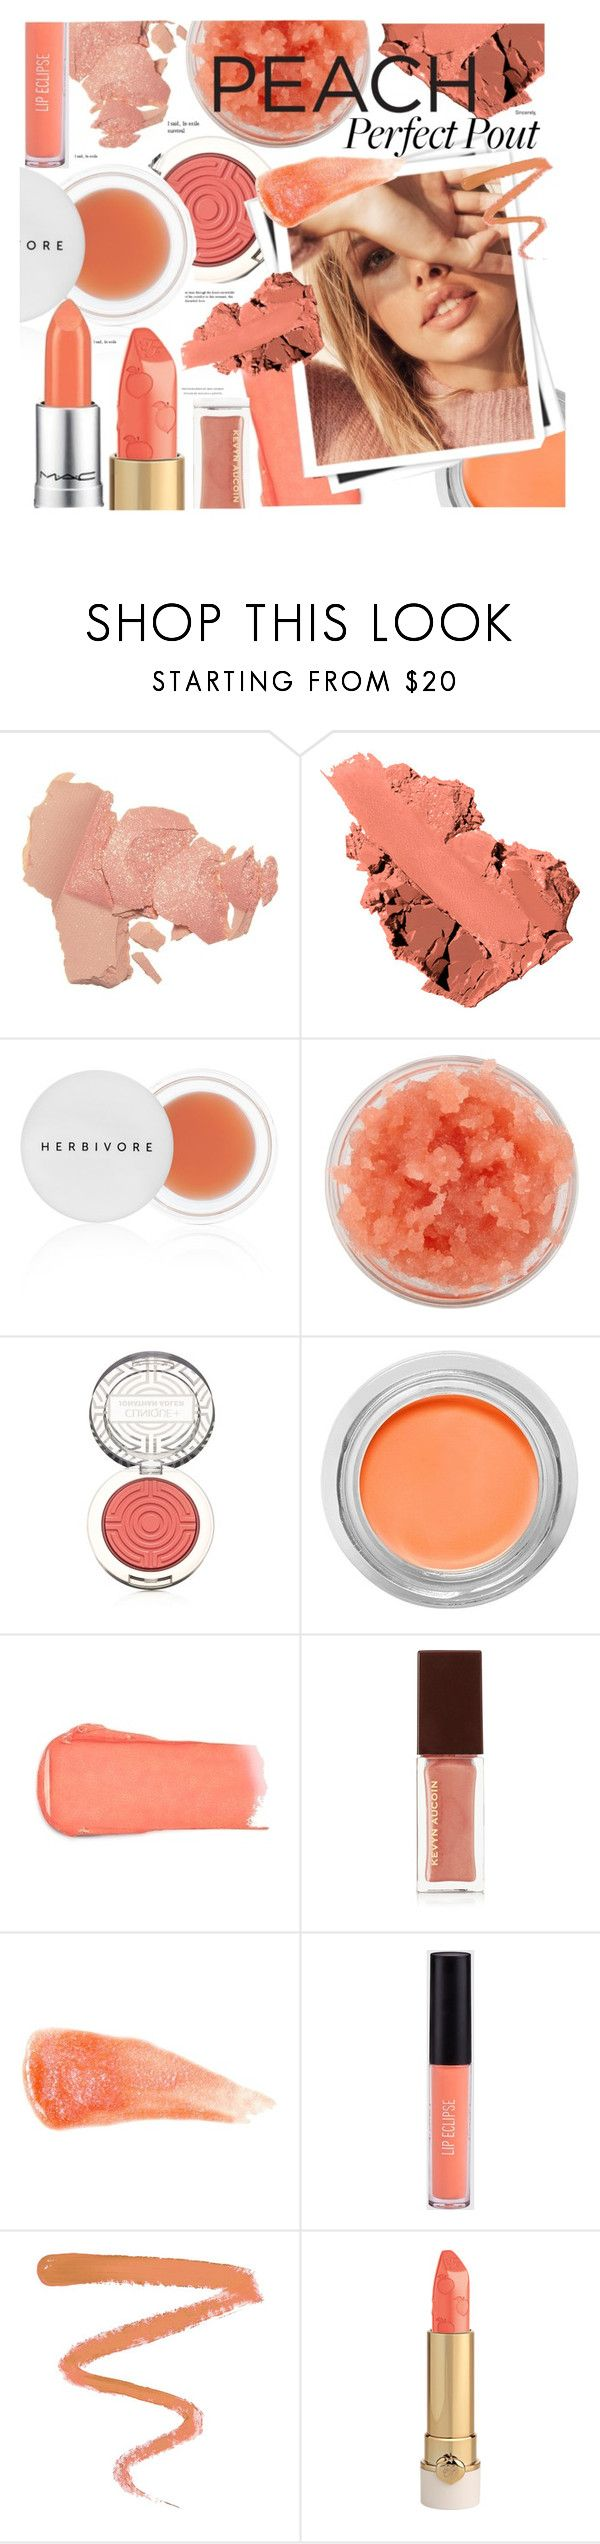 """""""Peach Perfect Pout"""" by paperdollsq ❤ liked on Polyvore featuring beauty, Bobbi Brown Cosmetics, Herbivore, Sara Happ, Clinique, Kevyn Aucoin, GALA, Anastasia Beverly Hills and Ellis Faas"""